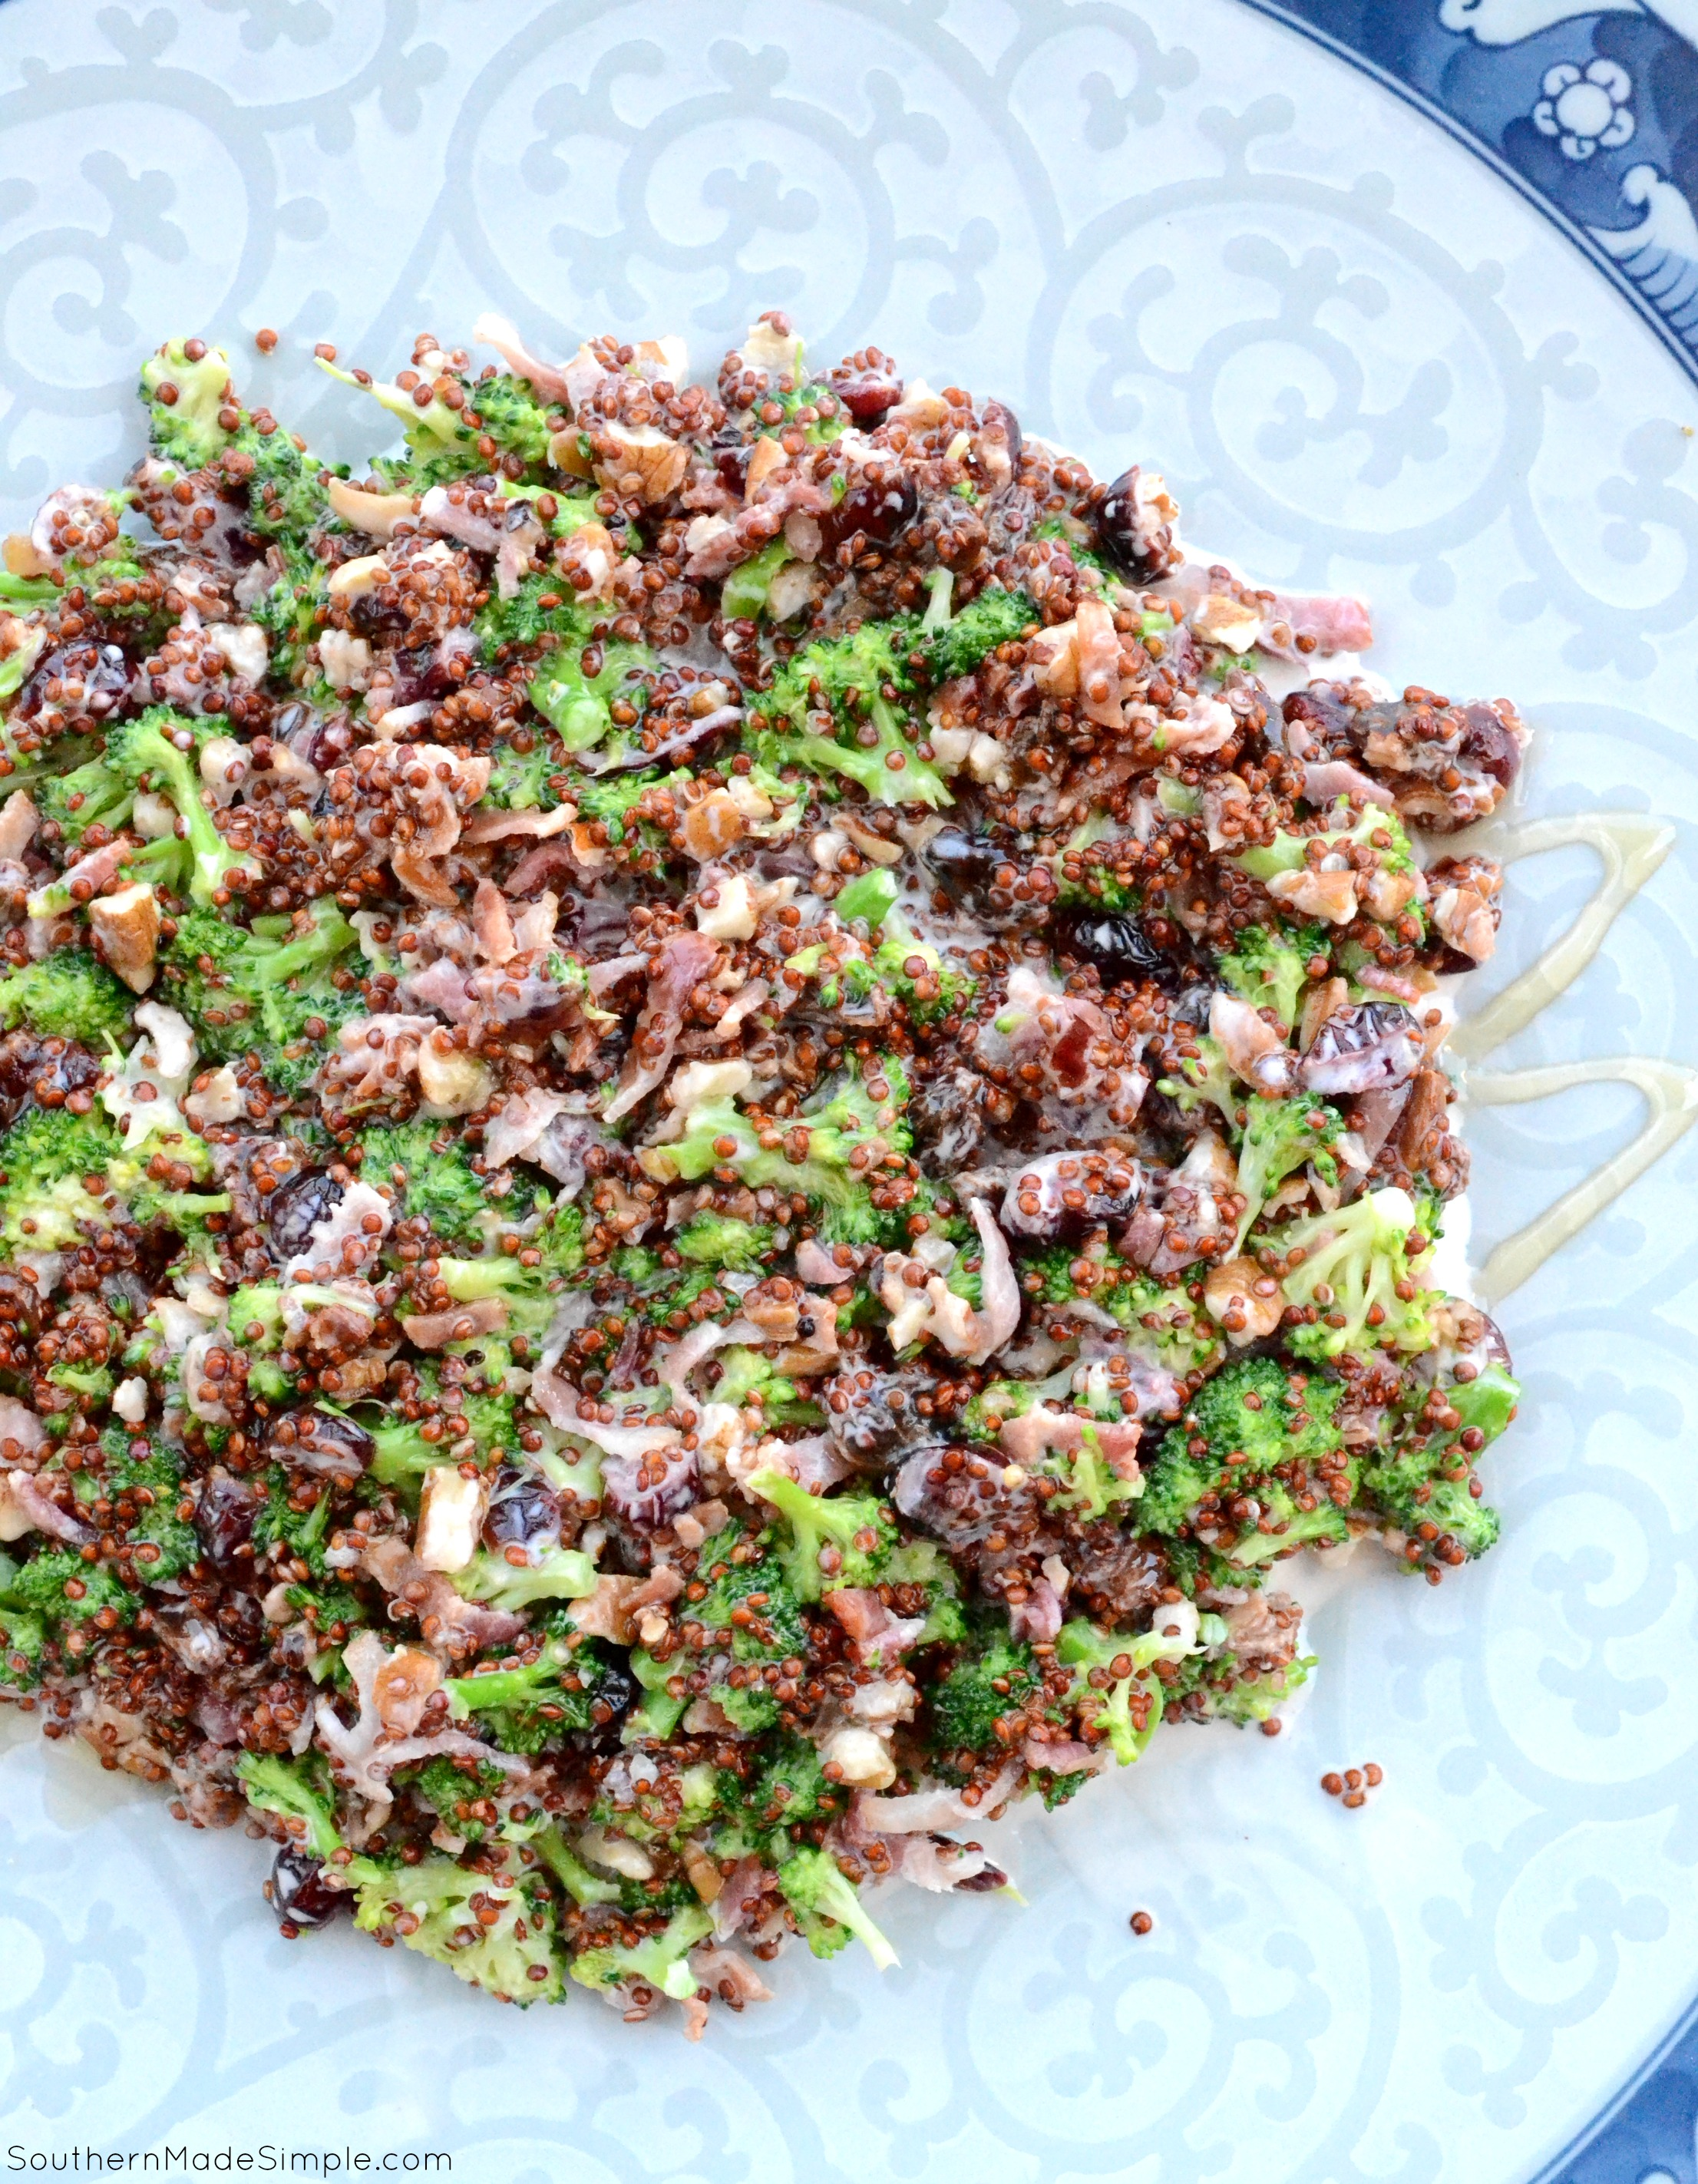 Broccoli, Bacon and Quinoa Salad